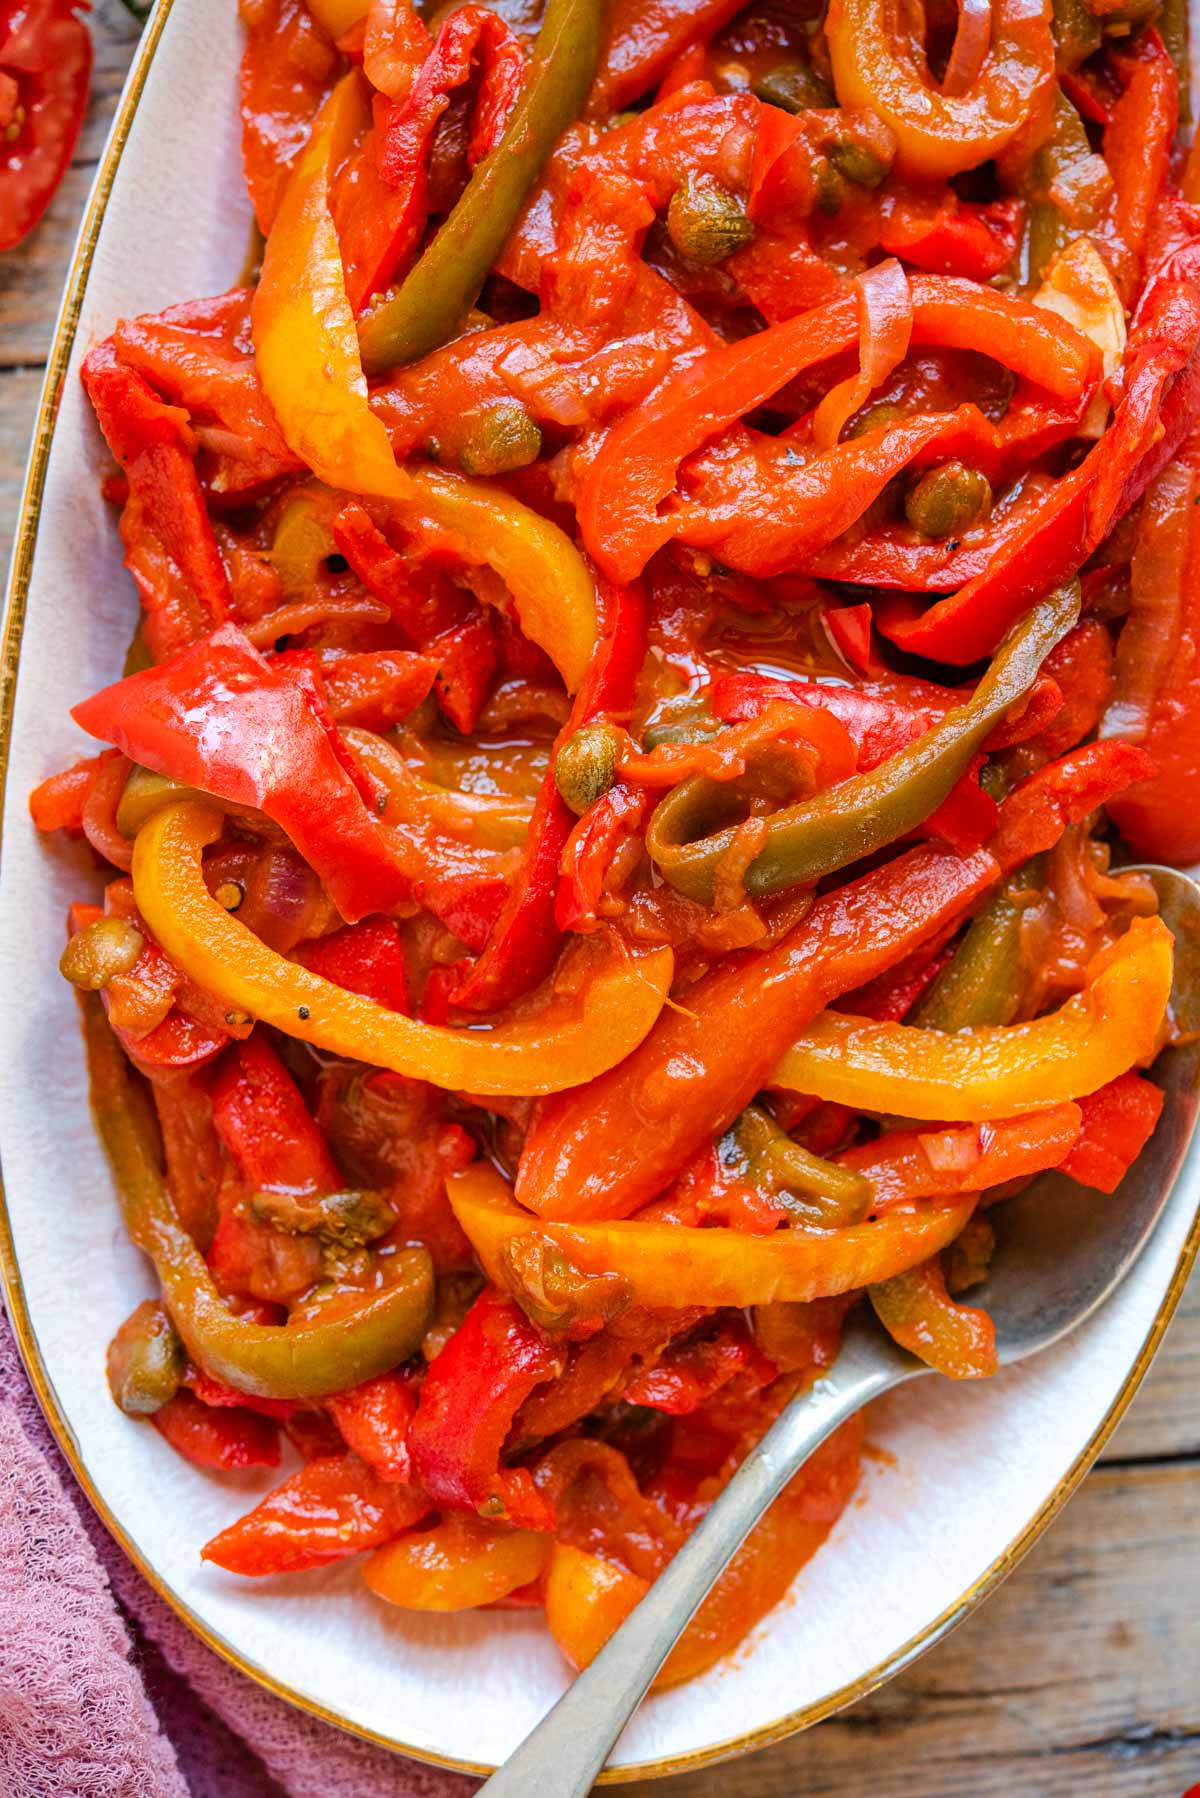 A close up of peppers in tomato sauce on a serving plate